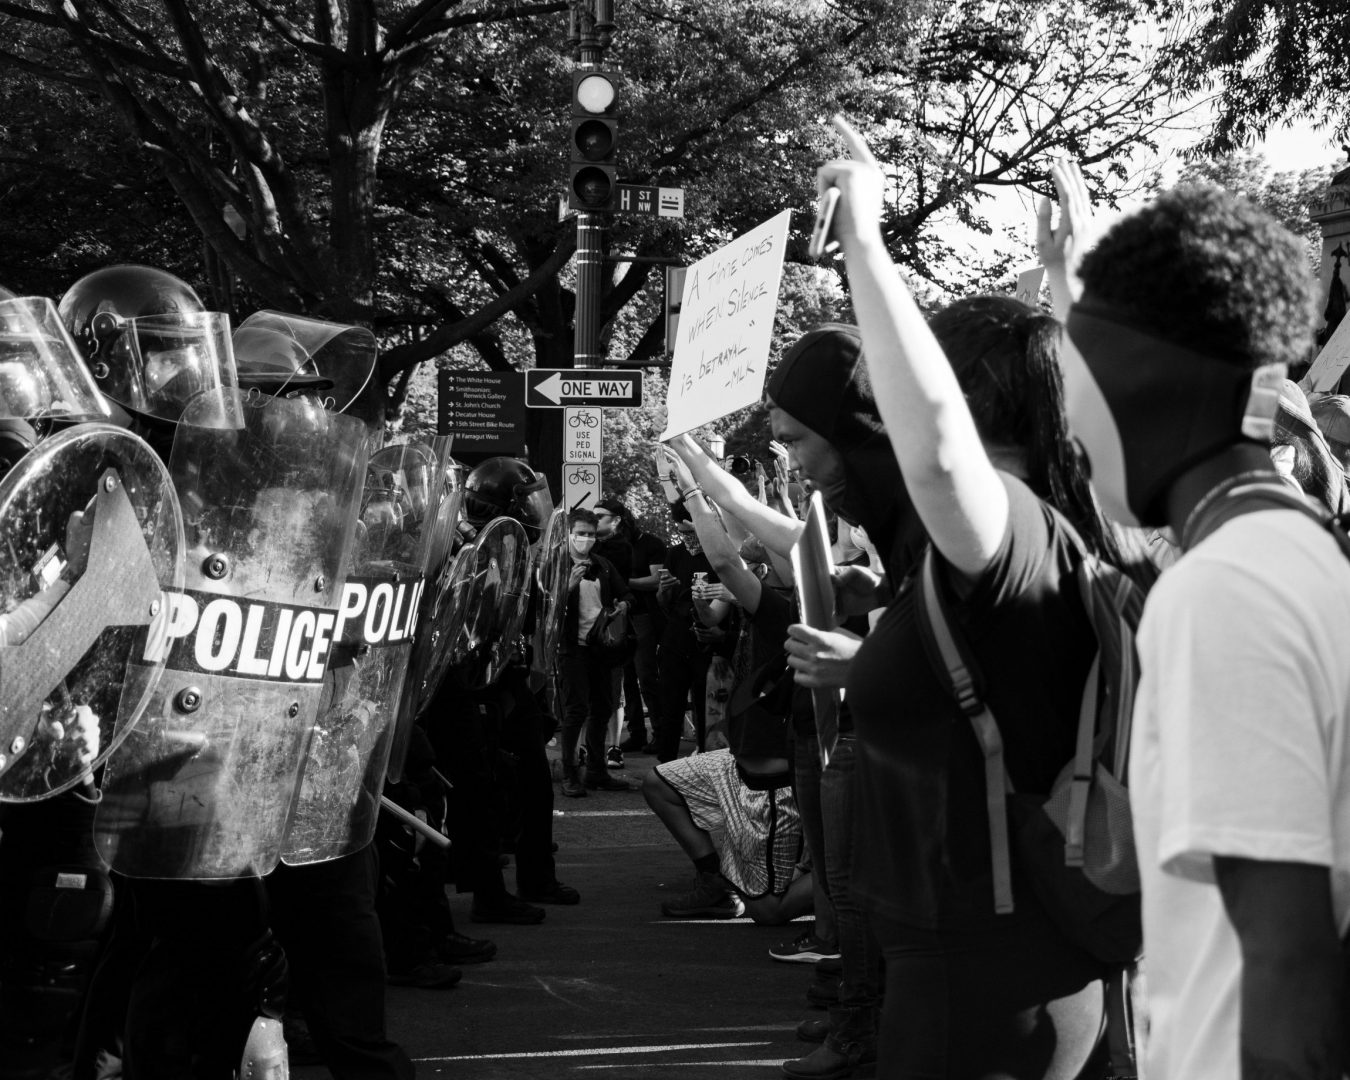 Black and white image of police in riot gear facing protestors on city street